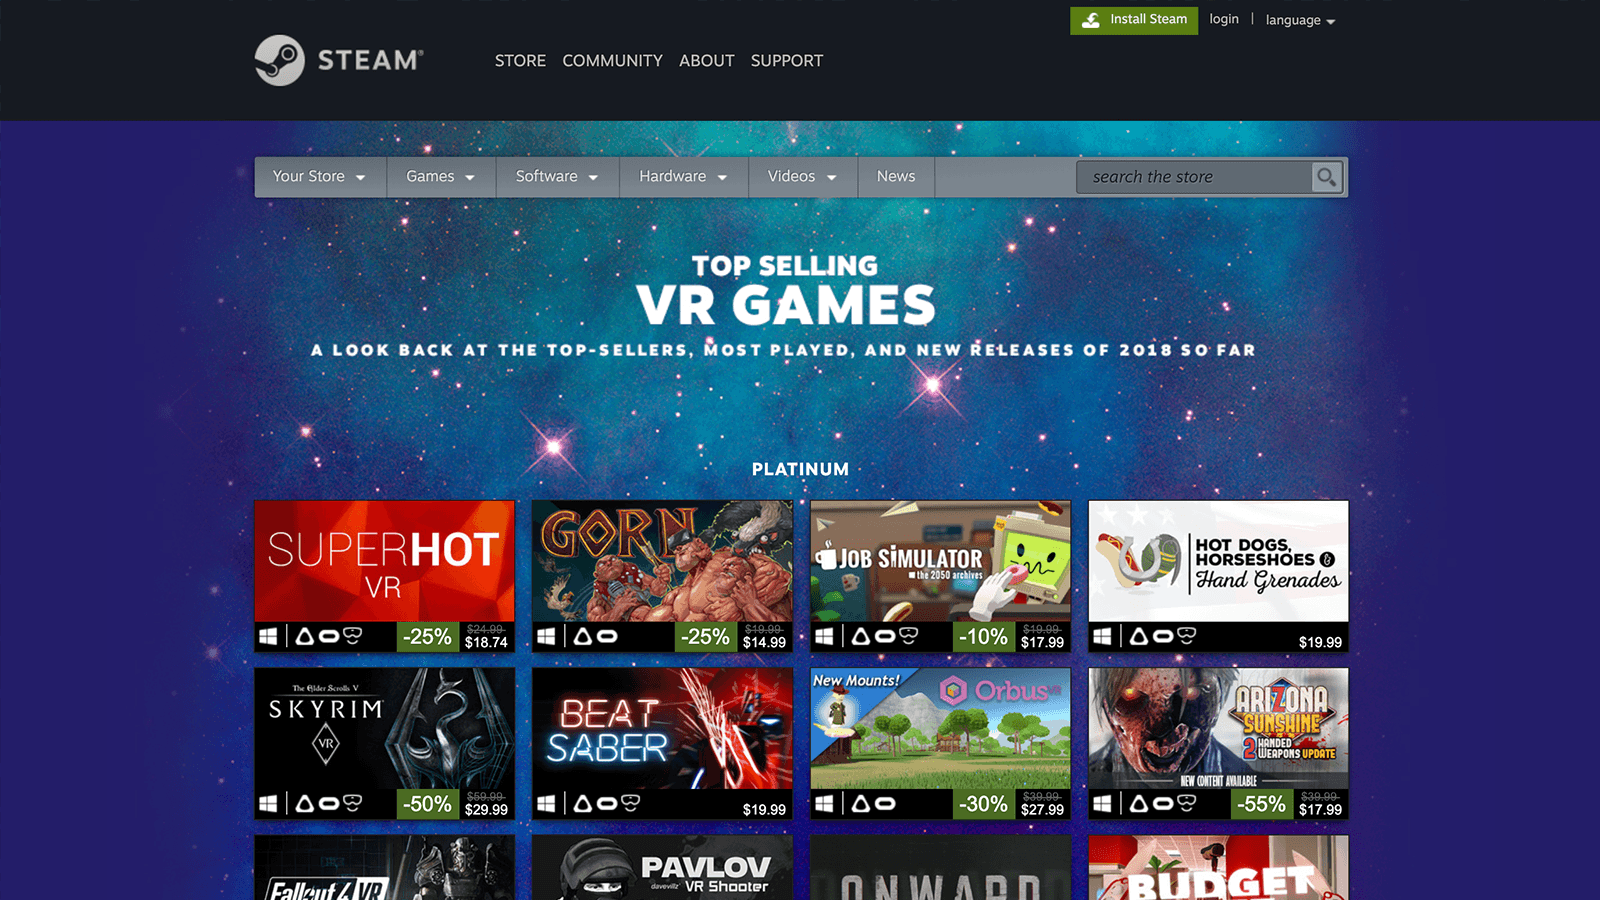 steam-top-selling-vr-games-2018